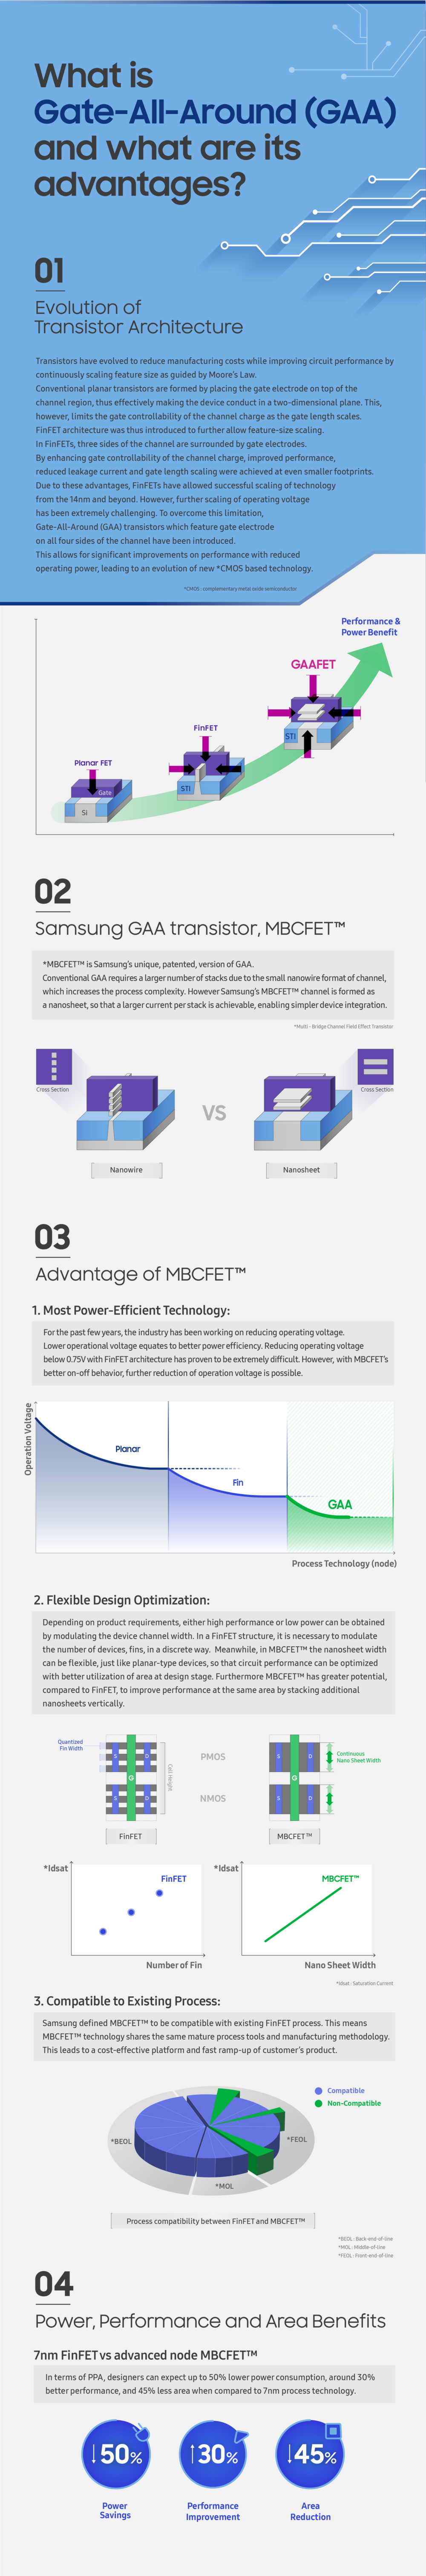 [Infographic] Reduced Size, Increased Performance: Samsung's GAA Transistor, MBCFET™